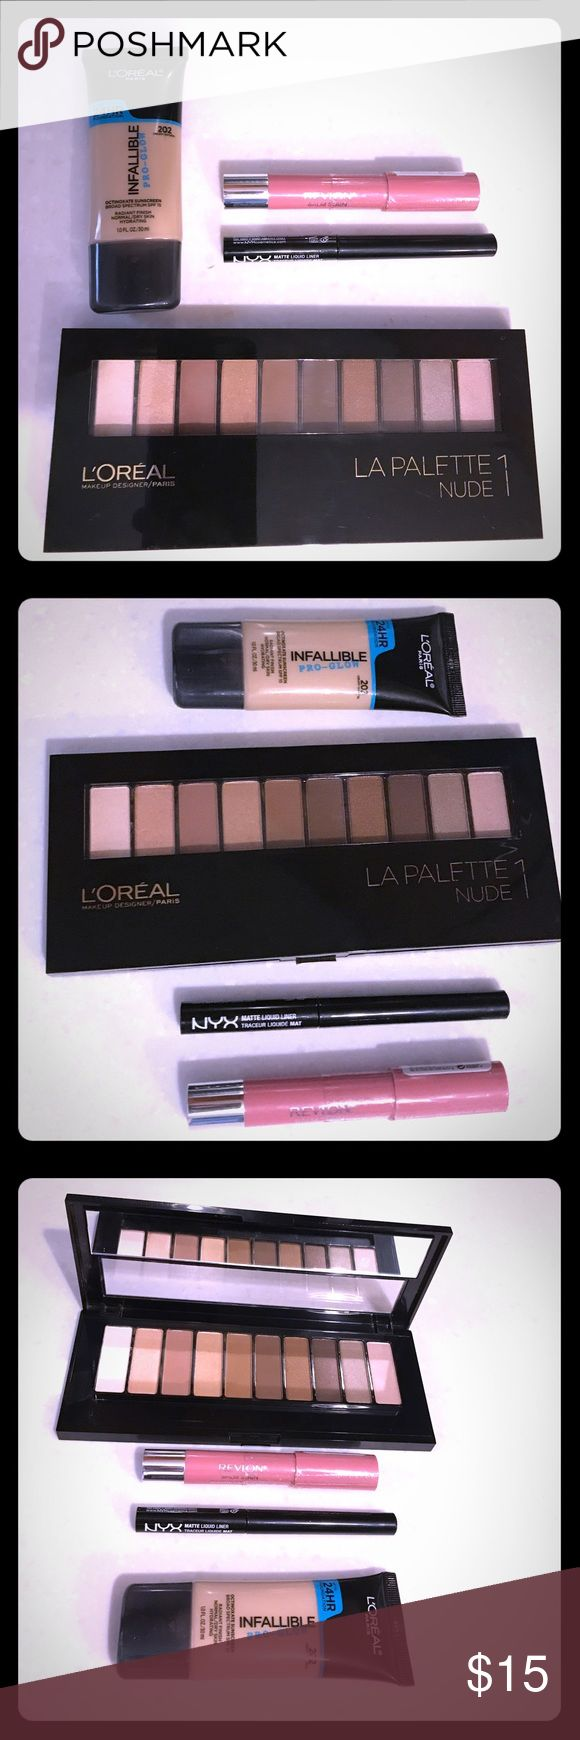 🌸🌸Bundle🌸🌸 L'Oréal, NYX & Revlon Perfect Bundle of Makeup! L'Oréal Nude Palette 1, L'Oréal Pro Glow Foundation in Creamy Natural 202, NYX Liquid Liner in Black/Noir and Revlon Balm stain in Honey. (Only used eye shadow once) everything else brand new. L'Oreal Makeup Eyeshadow